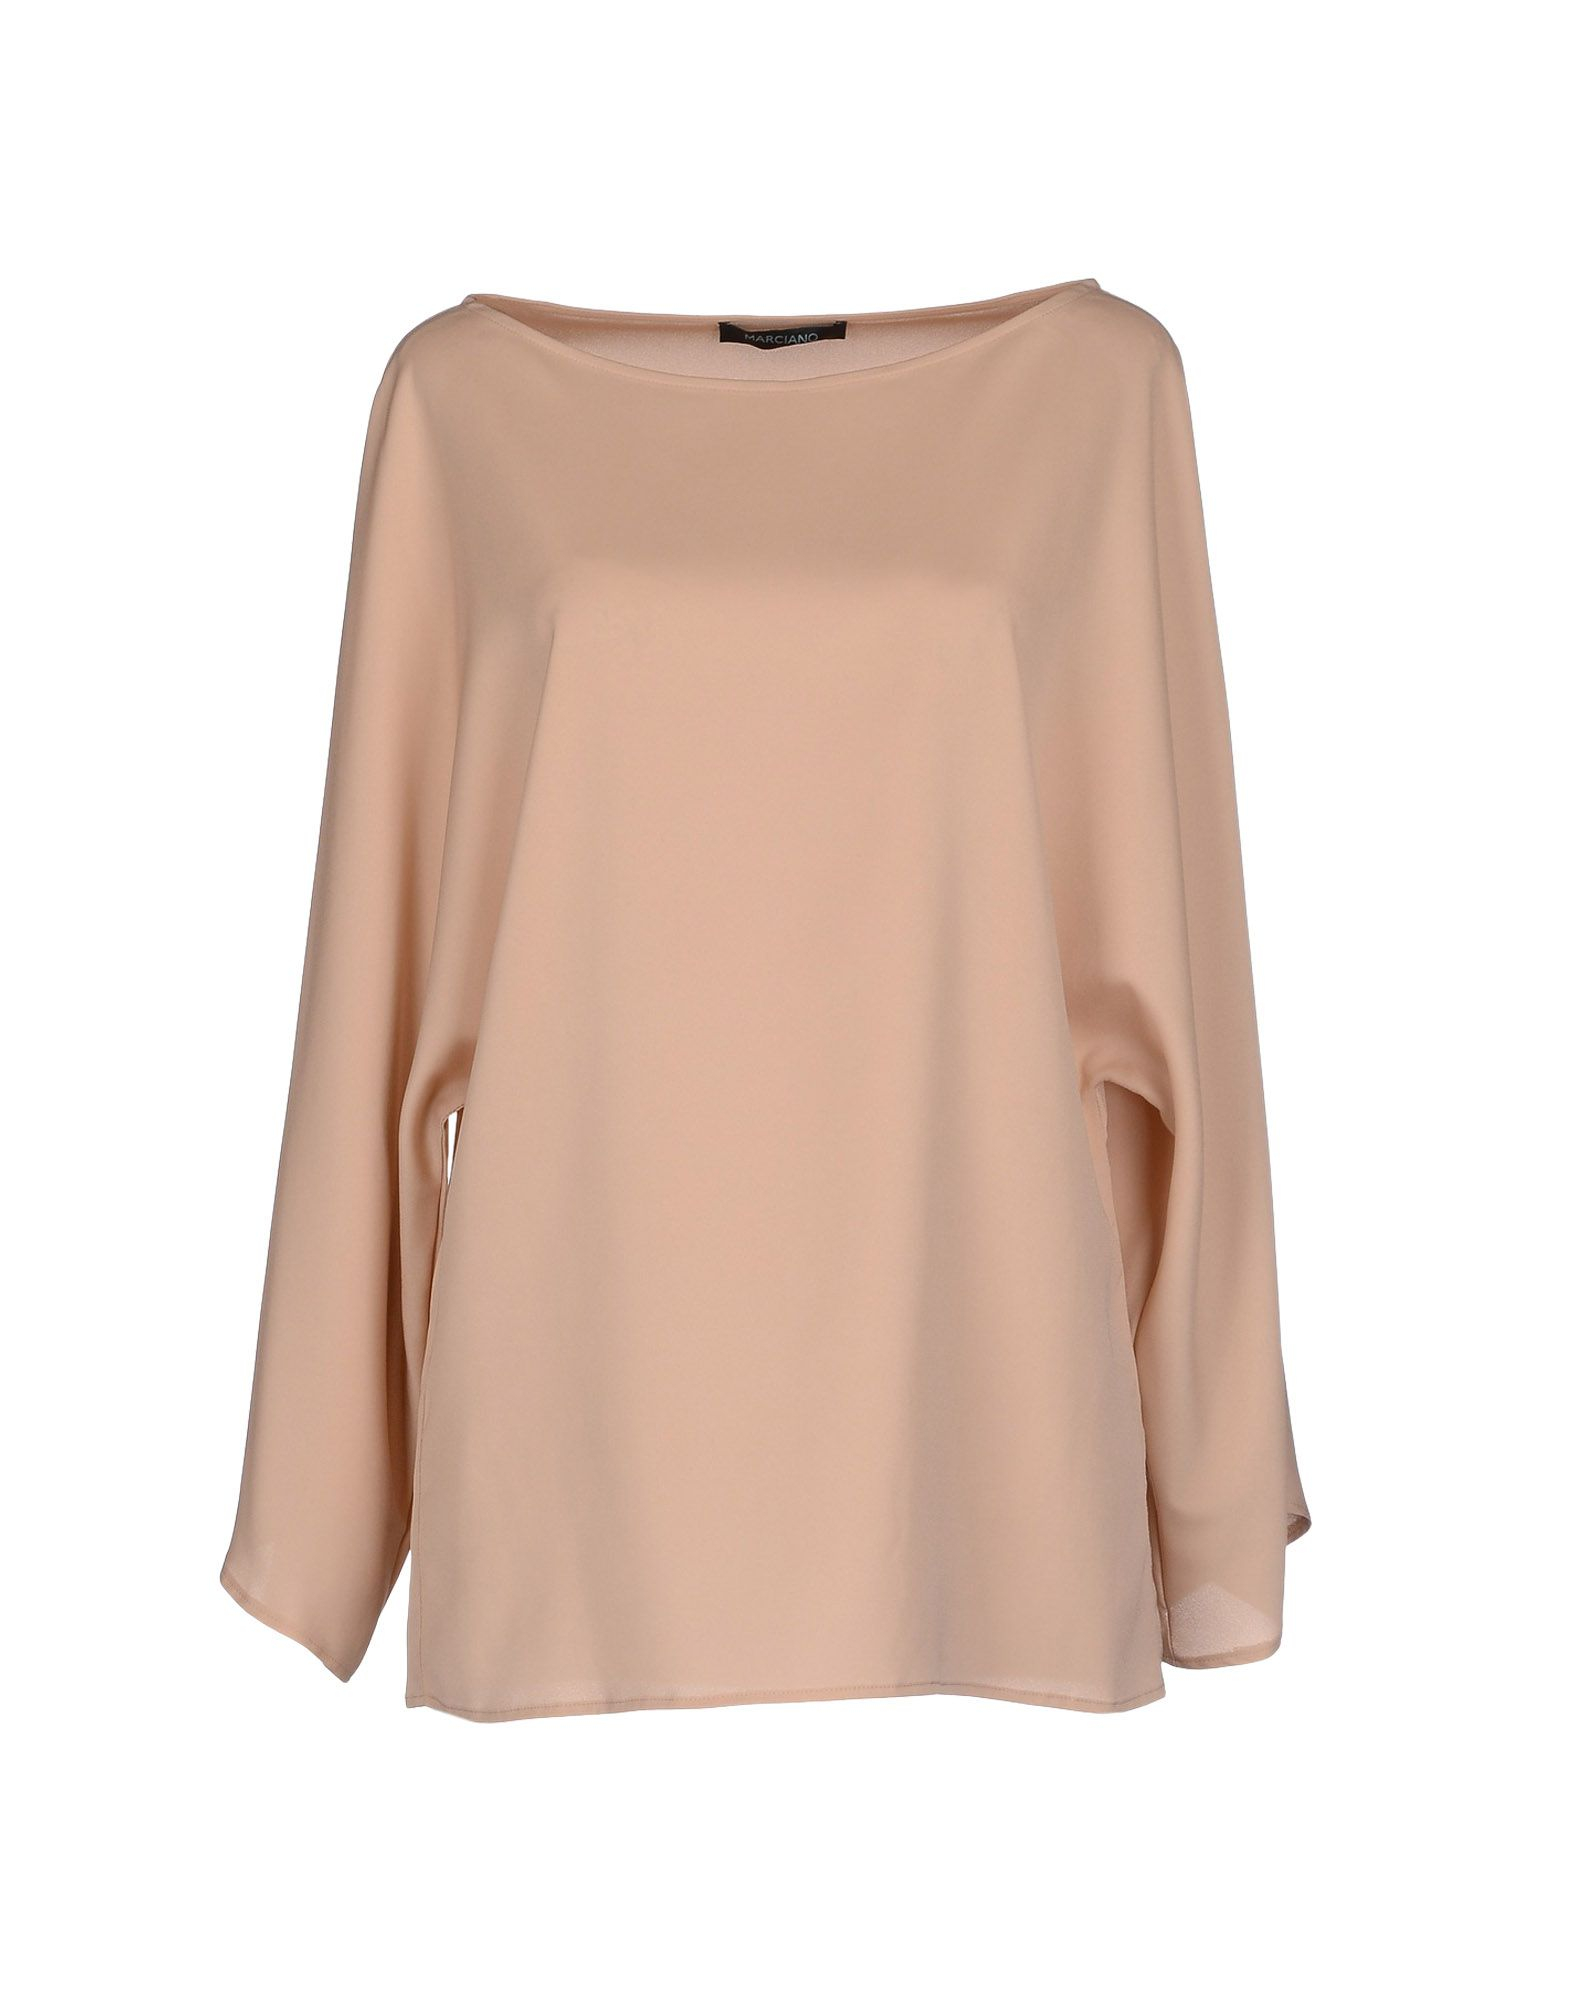 Guess Blouse in Natural | Lyst